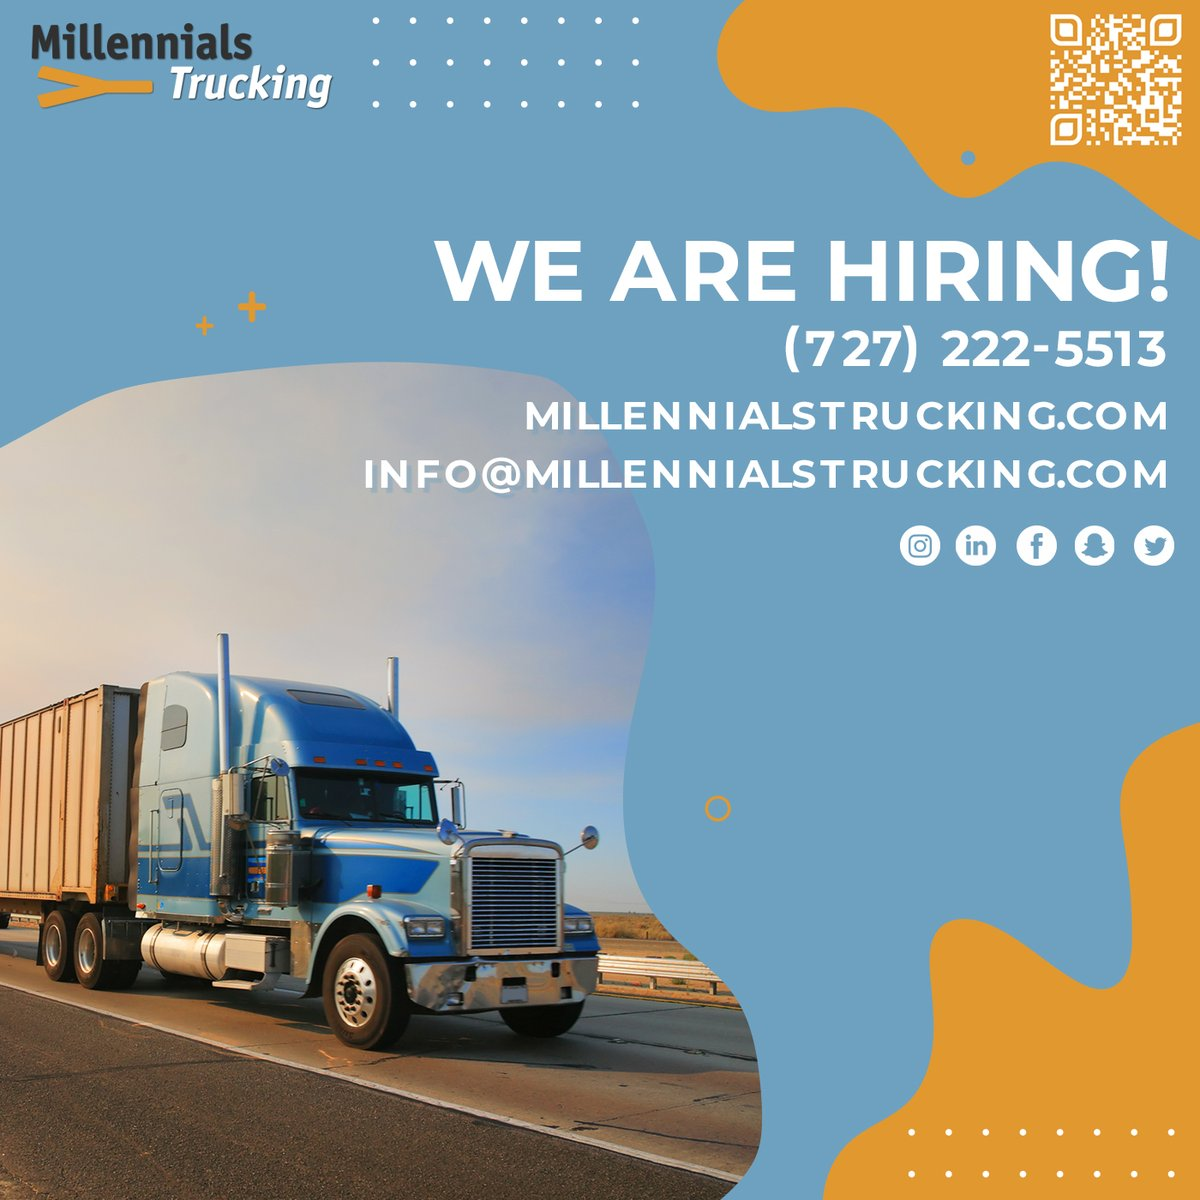 Everything you wanted in one place! Check out our website and apply now!  #staysafe #thankyou #millennialstrucking #trucking #trucks #truckerslife #truckers #wearehiring #findjob #country #jobs #work #usatrucks #truckdrivers #trucker #usaroads #hiring